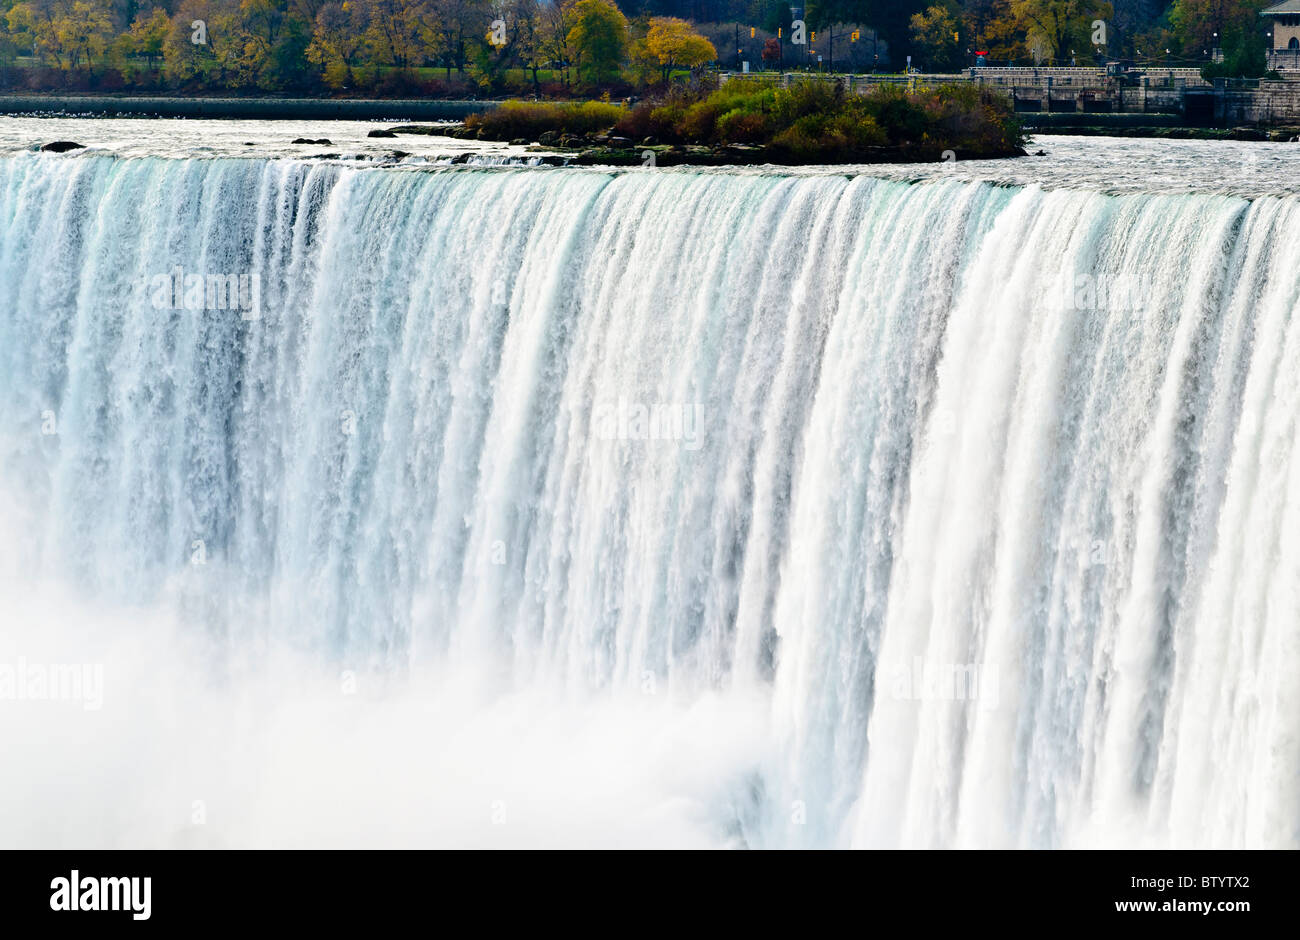 Thundering waters of Niagara Falls also known as Horseshoe Falls,Ontario,Canada - Stock Image